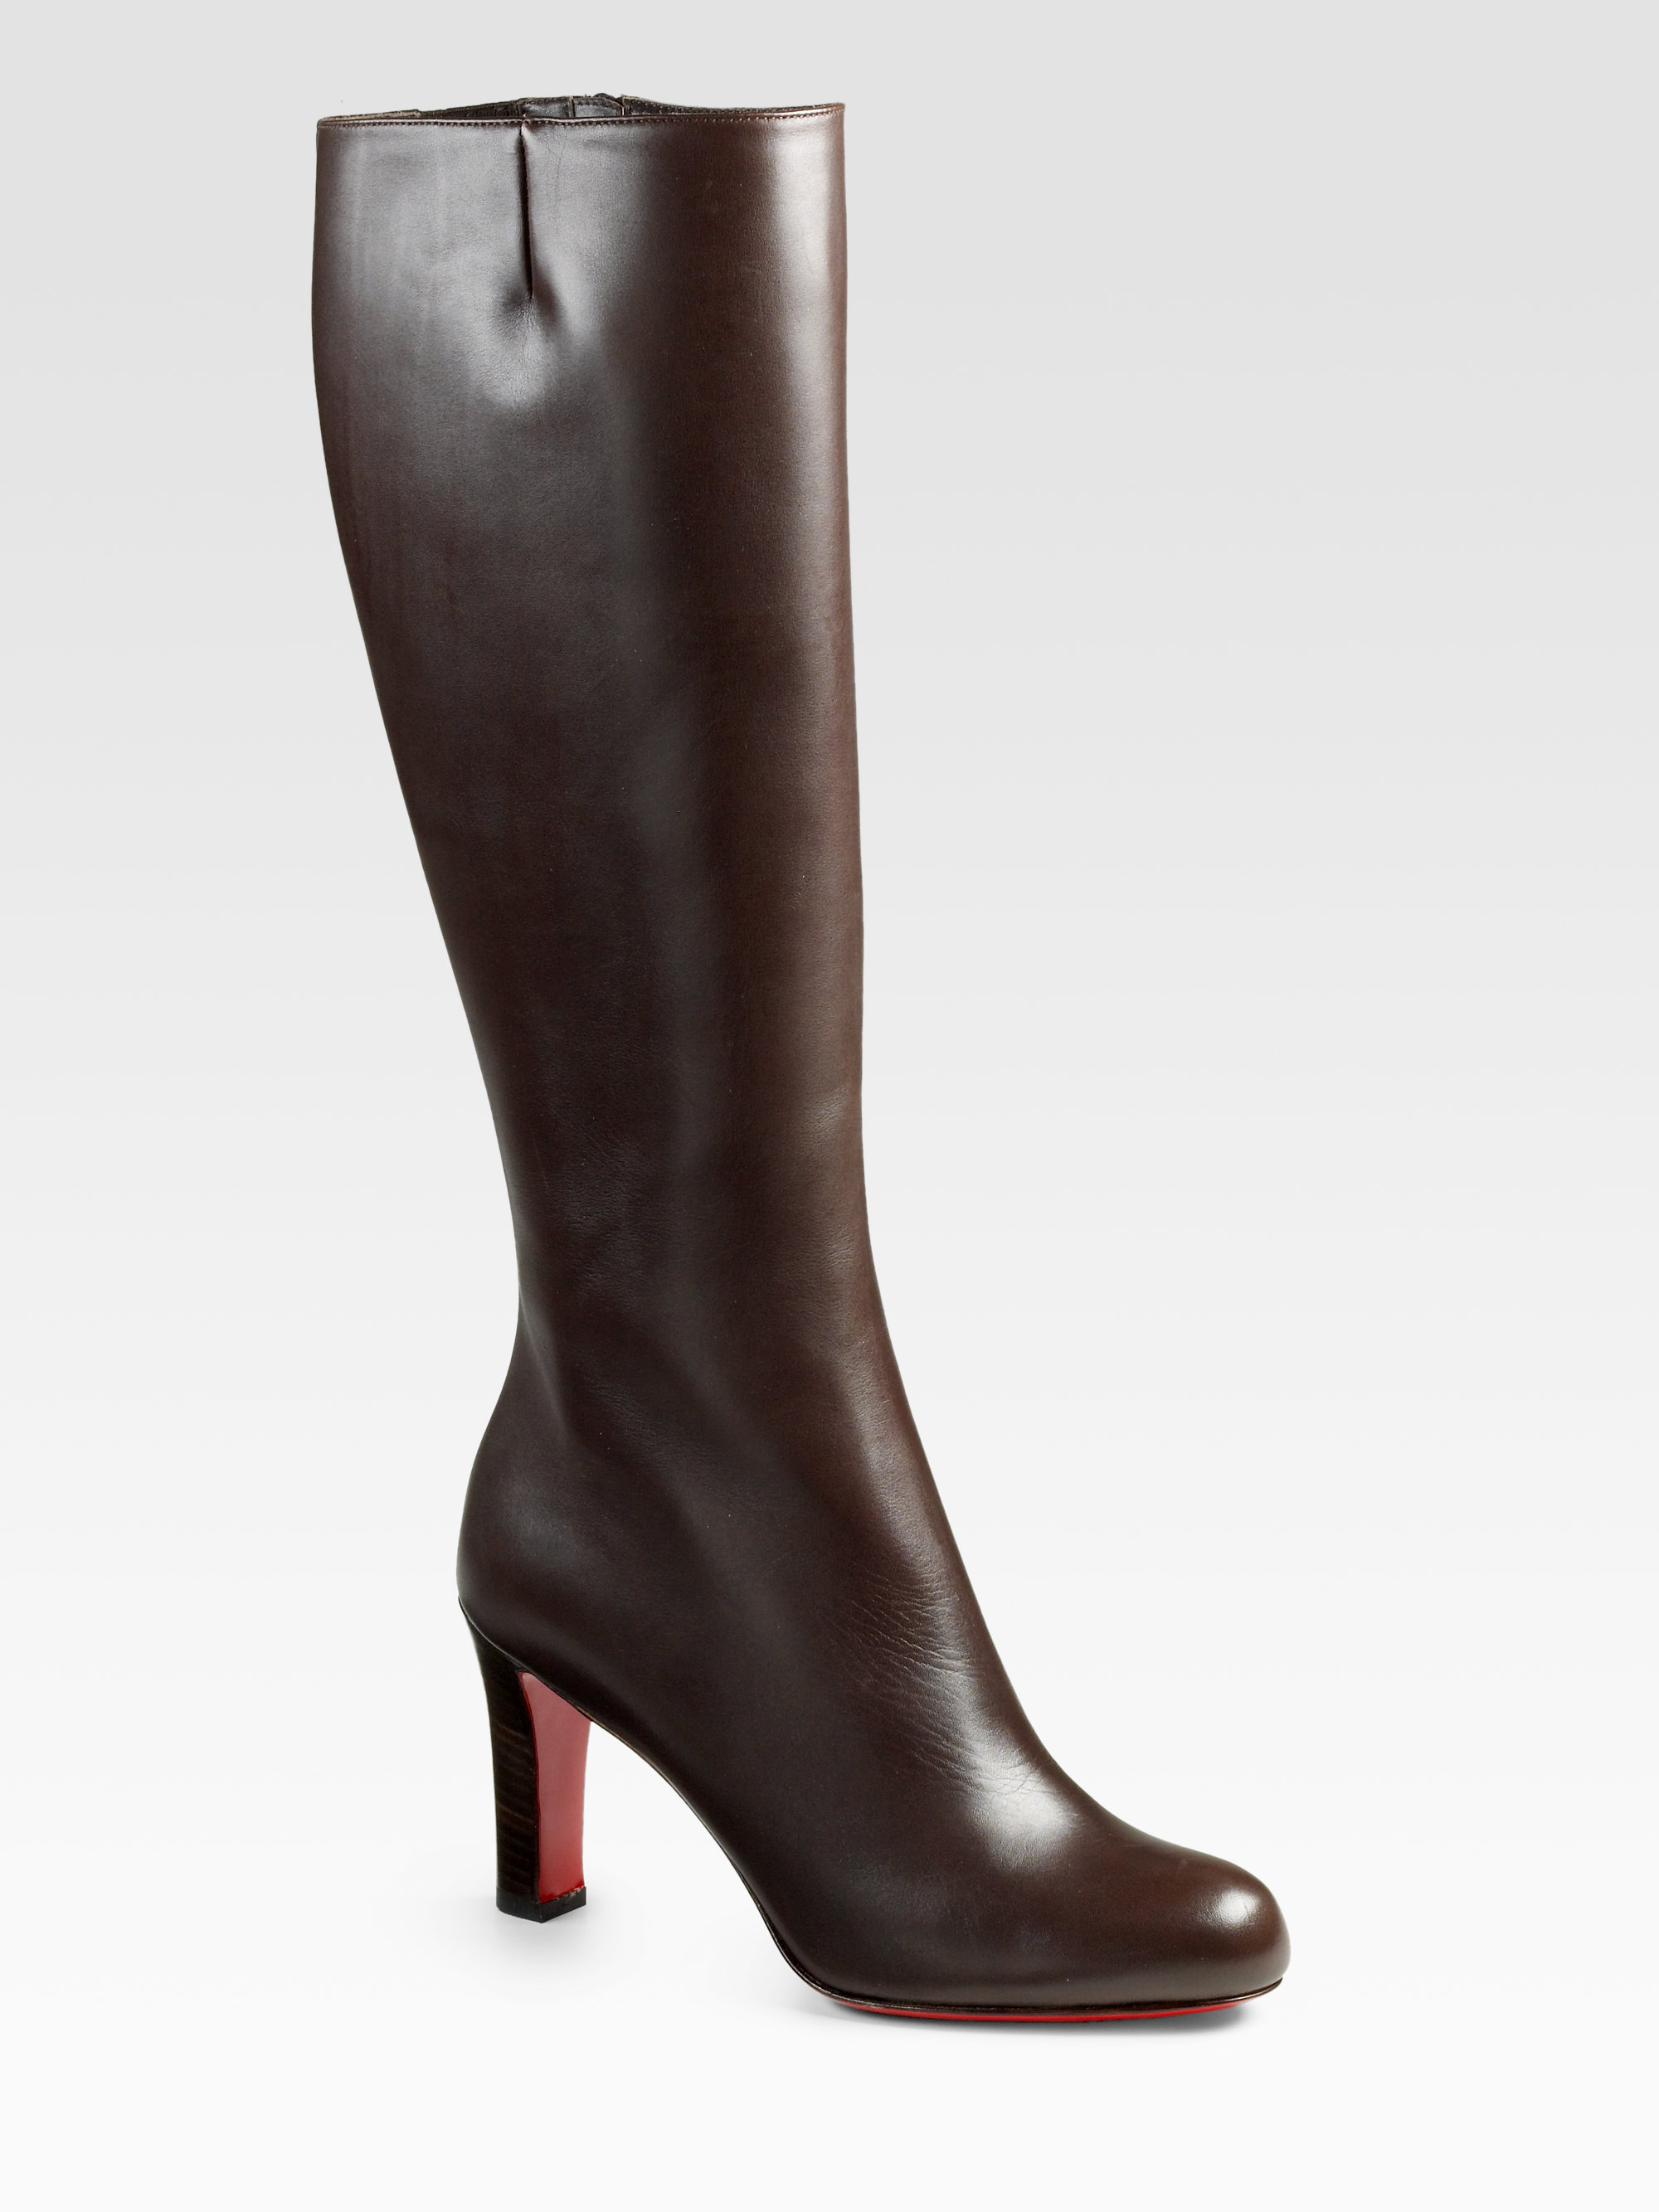 christian louboutin leather knee-high boots | The Little Arts Academy